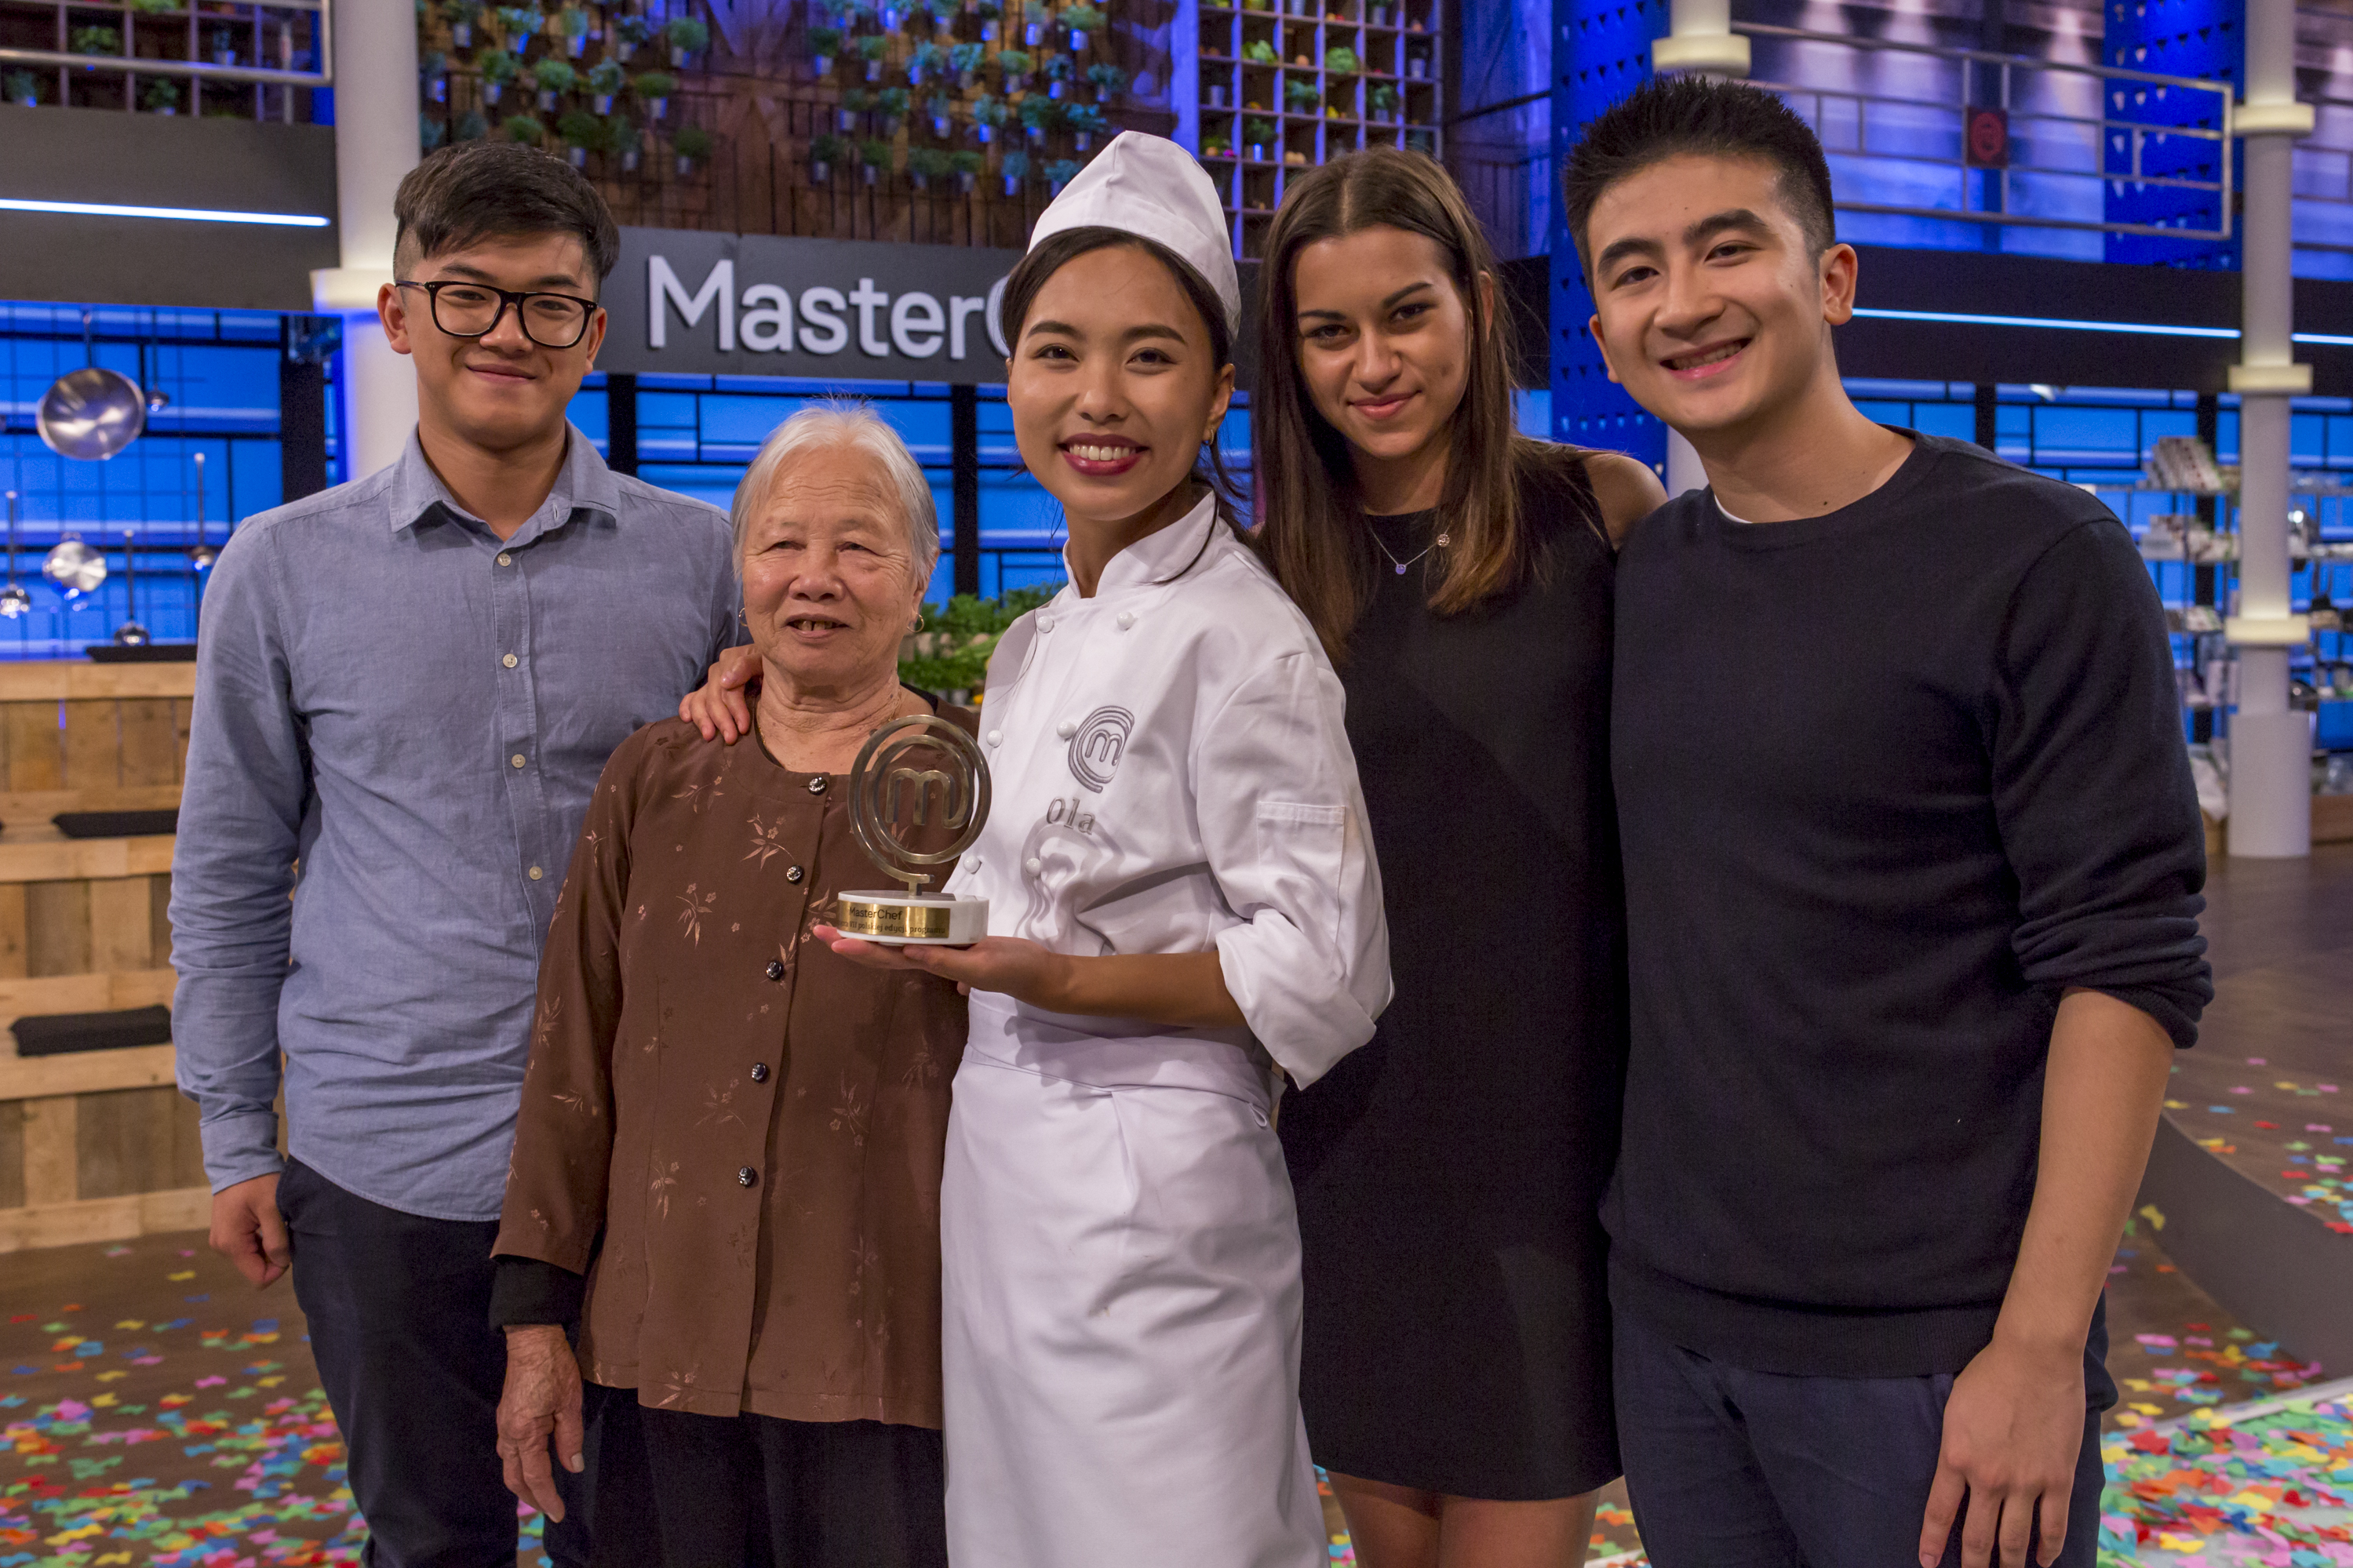 metropole-hanoi-hosts-polish-gastronomy-week-with-masterchef-champion